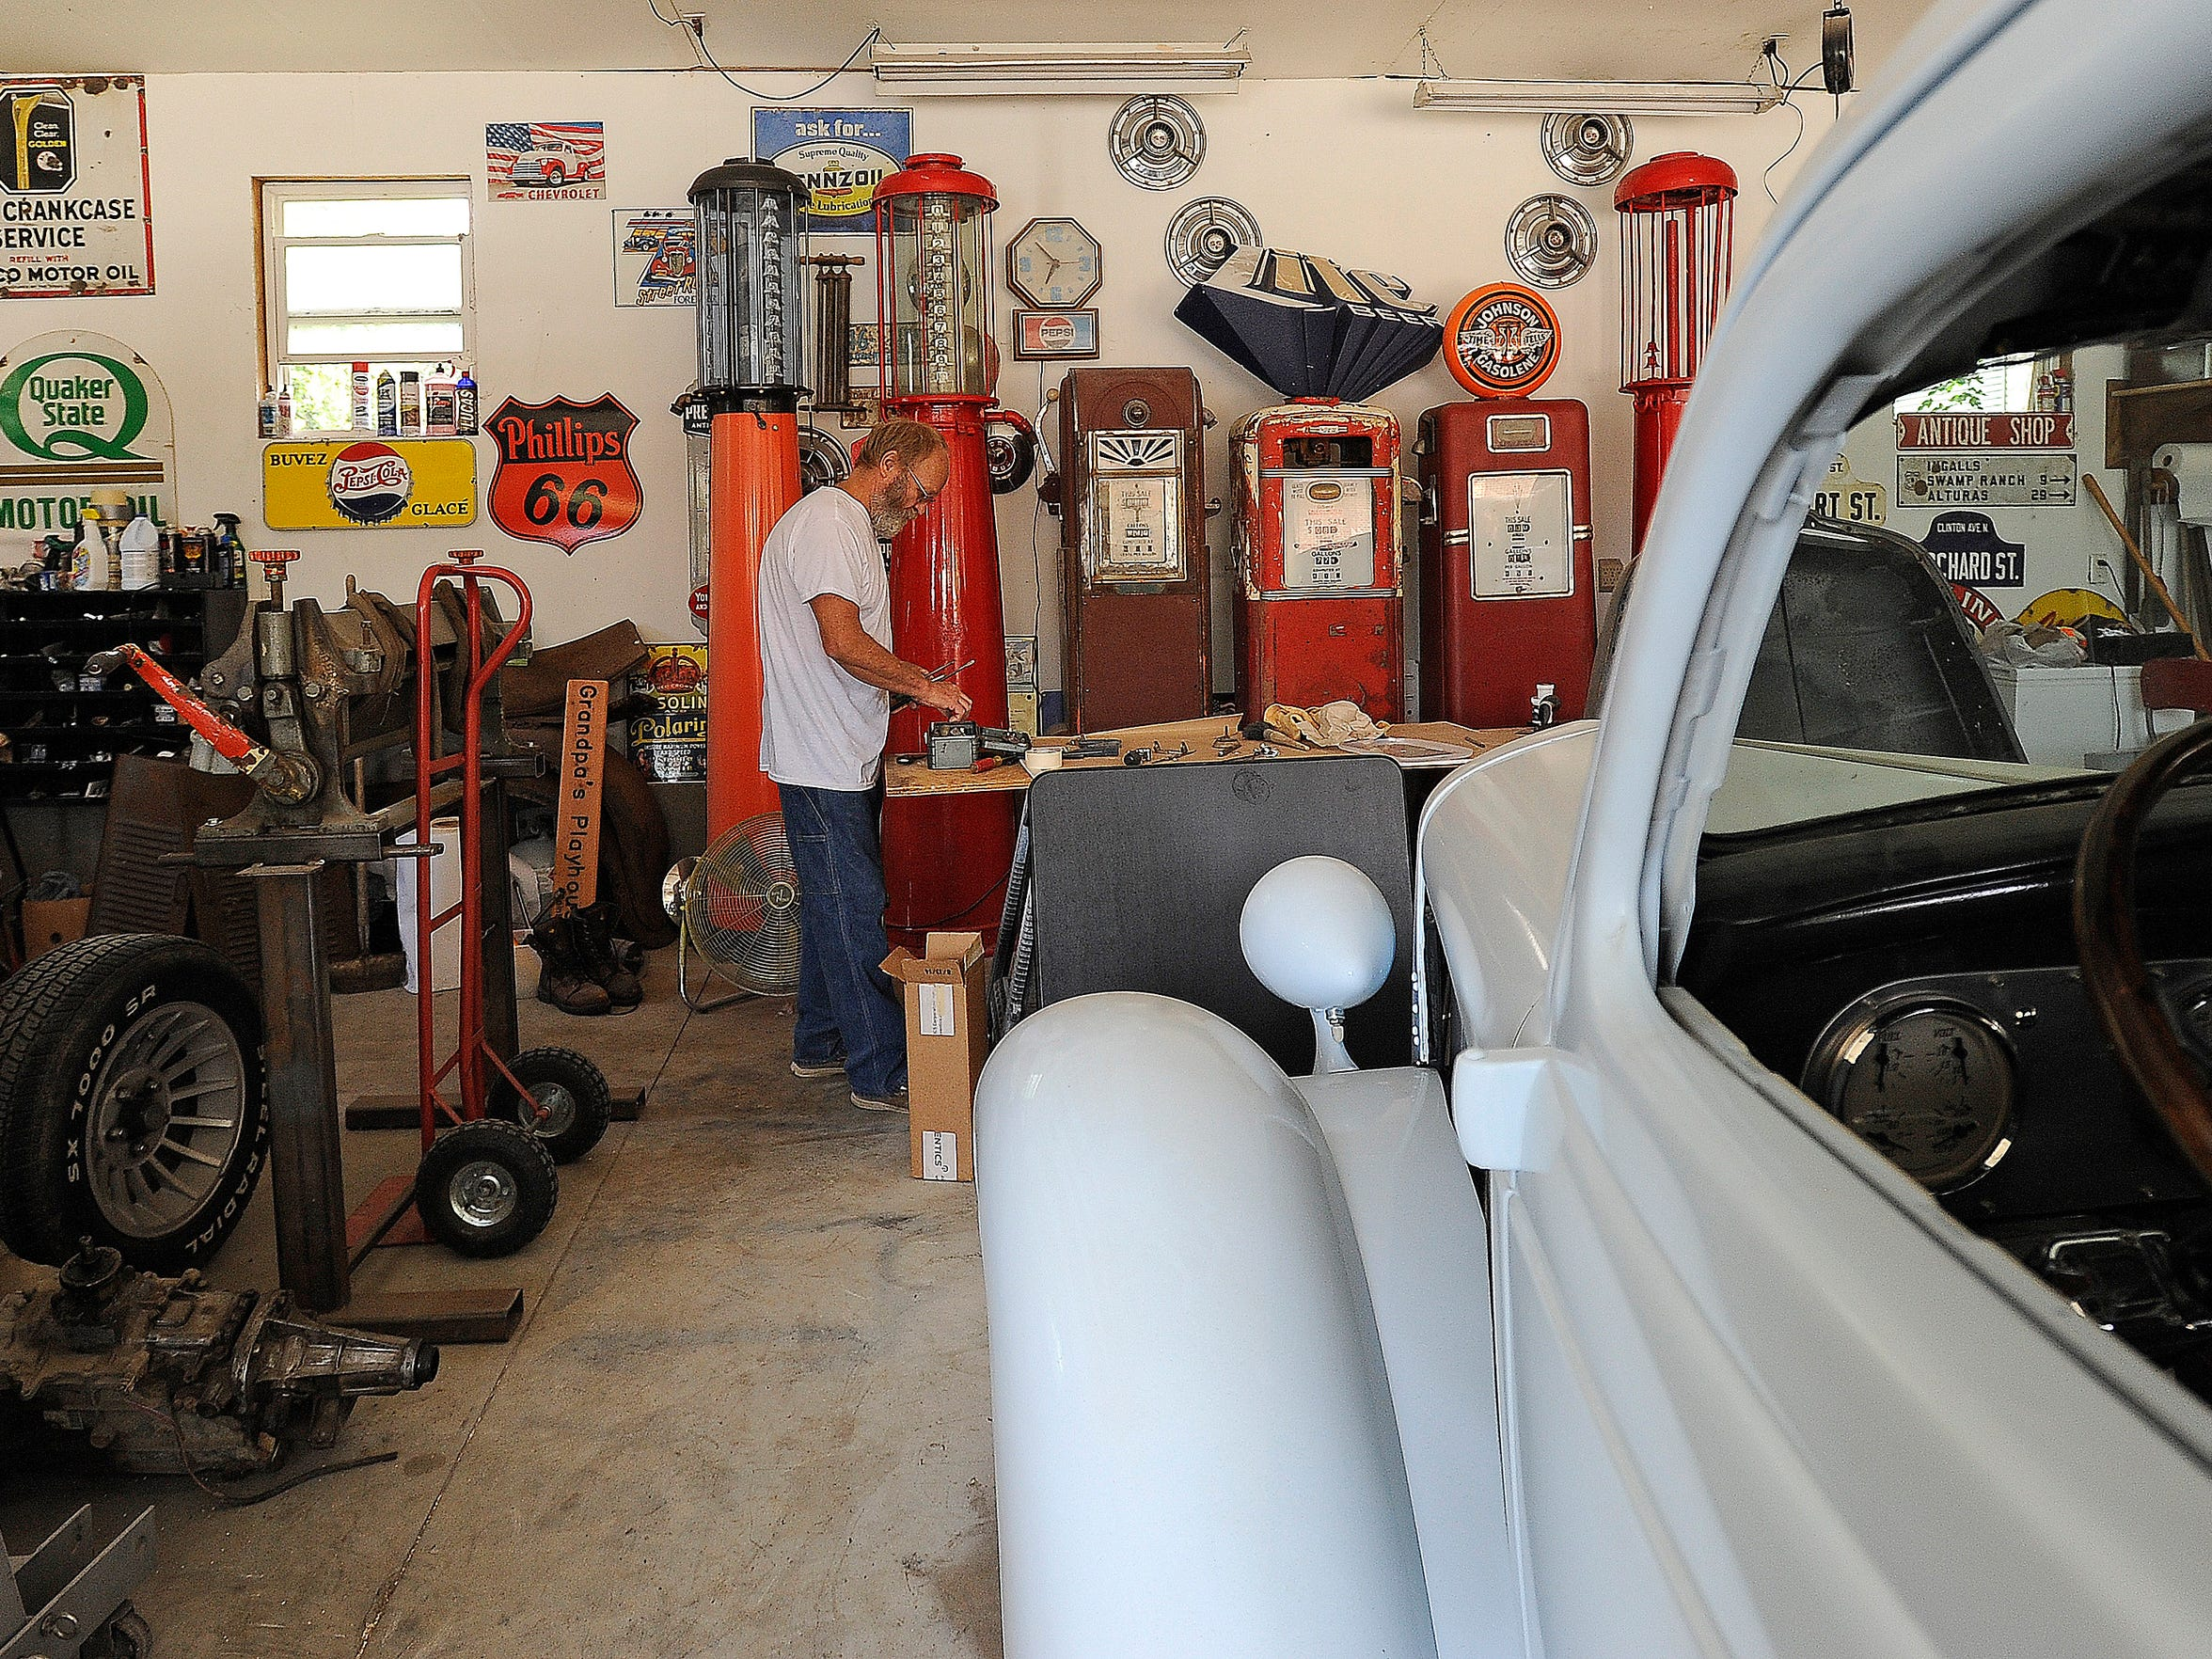 Dennis Johnson, 63, organizes his garage in the Whittier neighborhood in Sioux Falls, S.D., Thursday, July 9, 2015. Johnson moved to his home one month ago.